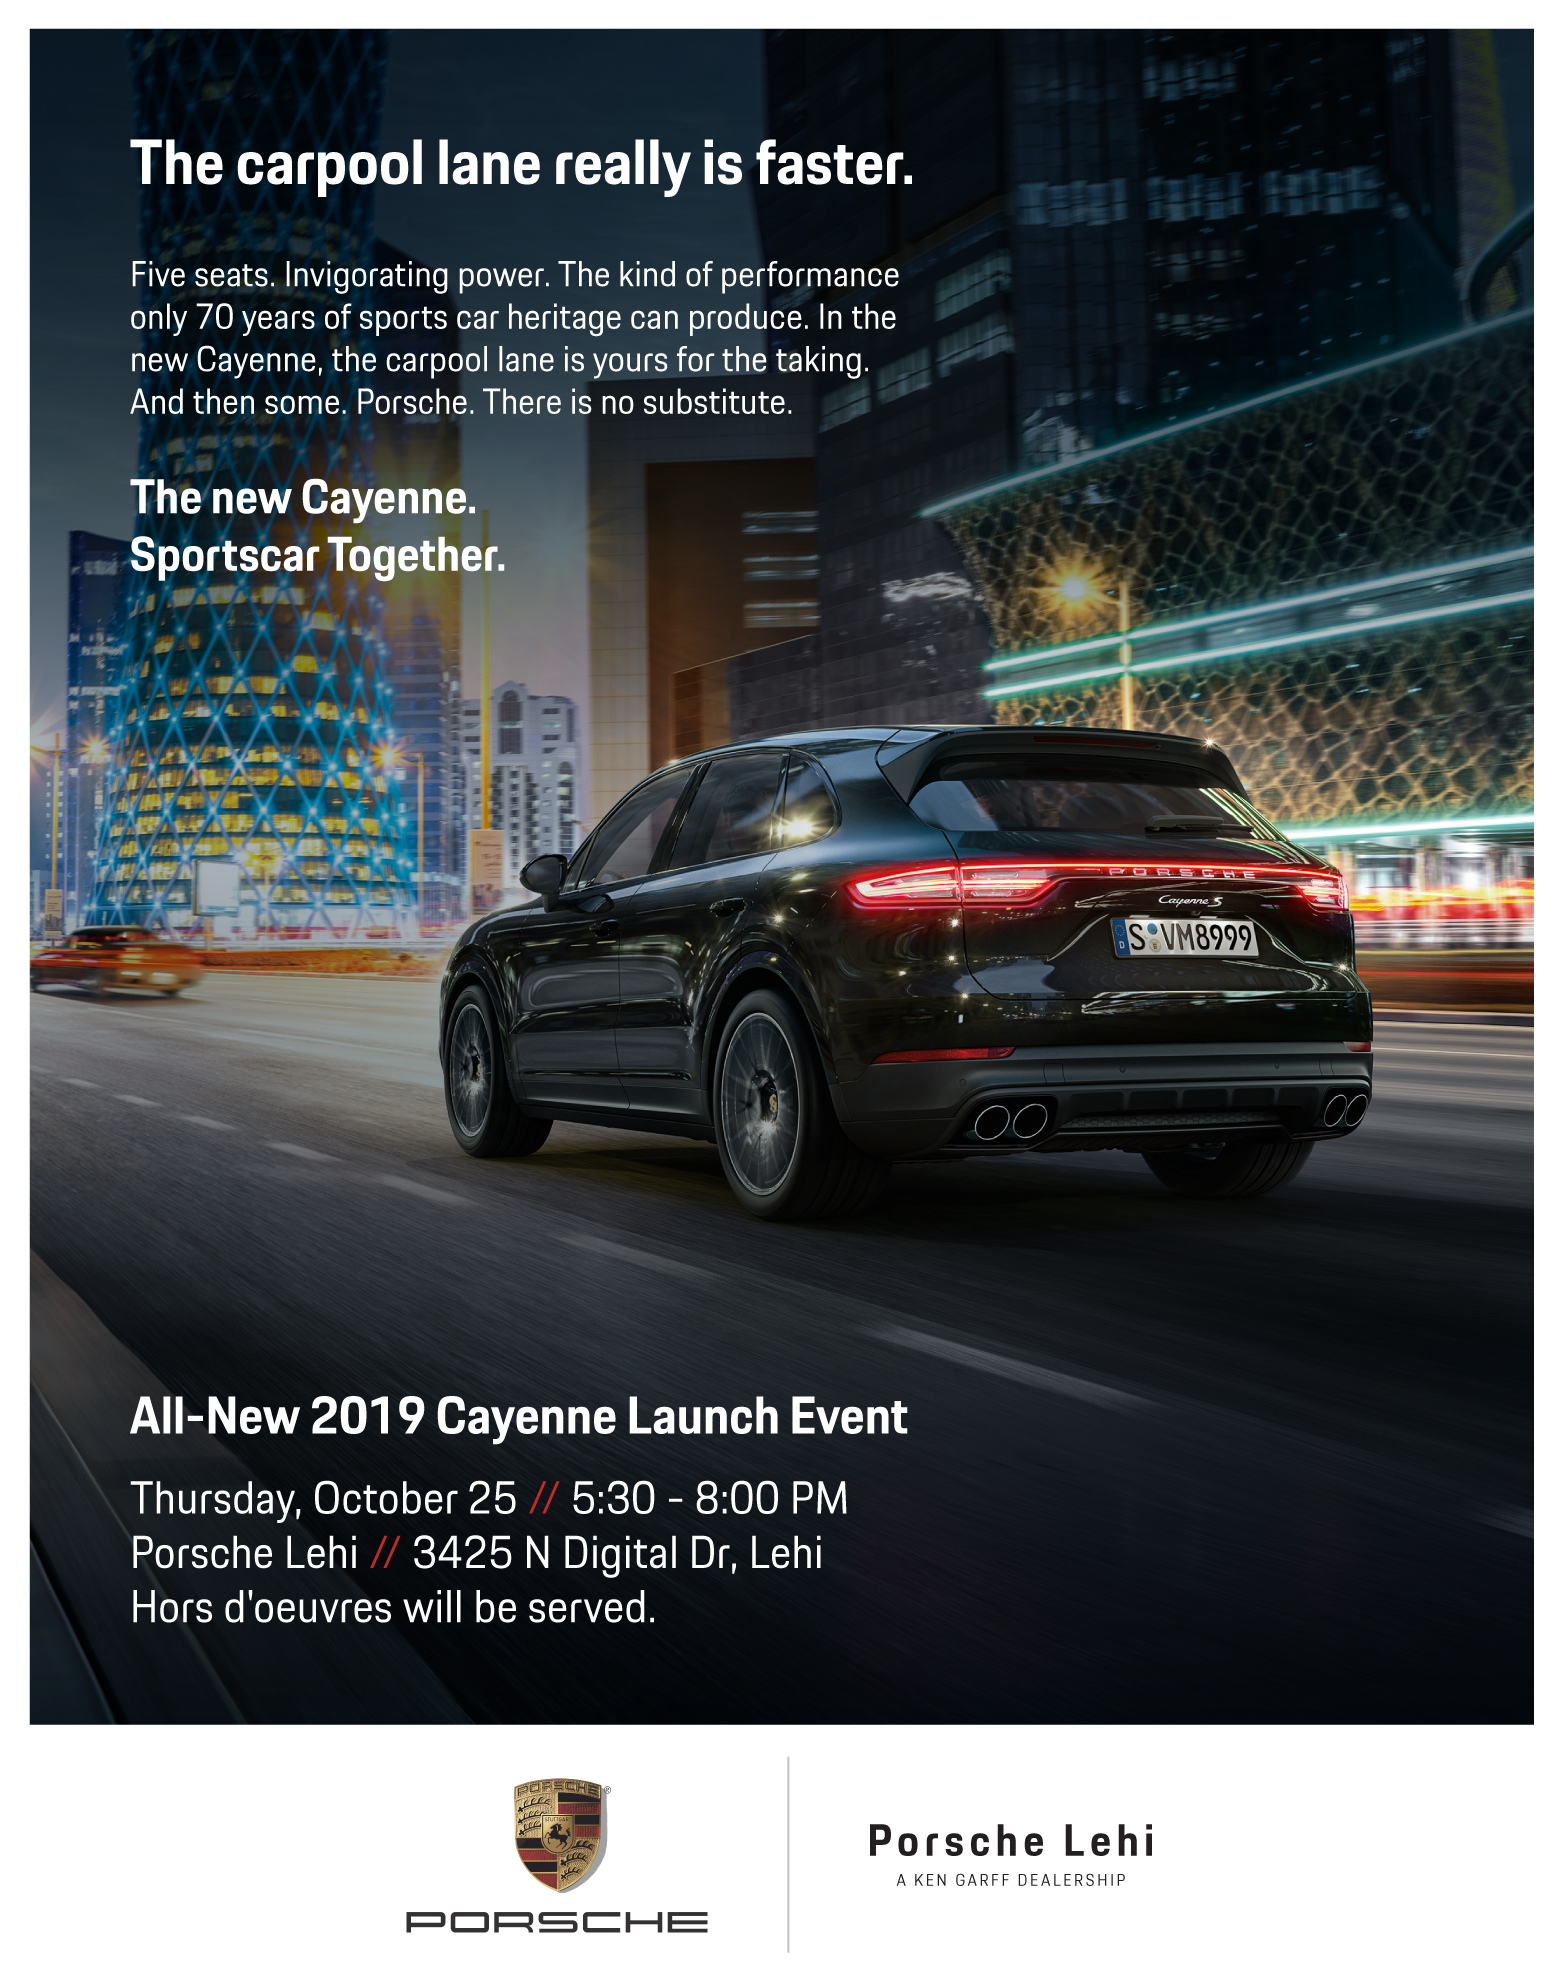 All-New 2019 Cayenne Launch Event // Porsche Lehi // October 25 // 5:30 - 8 PM